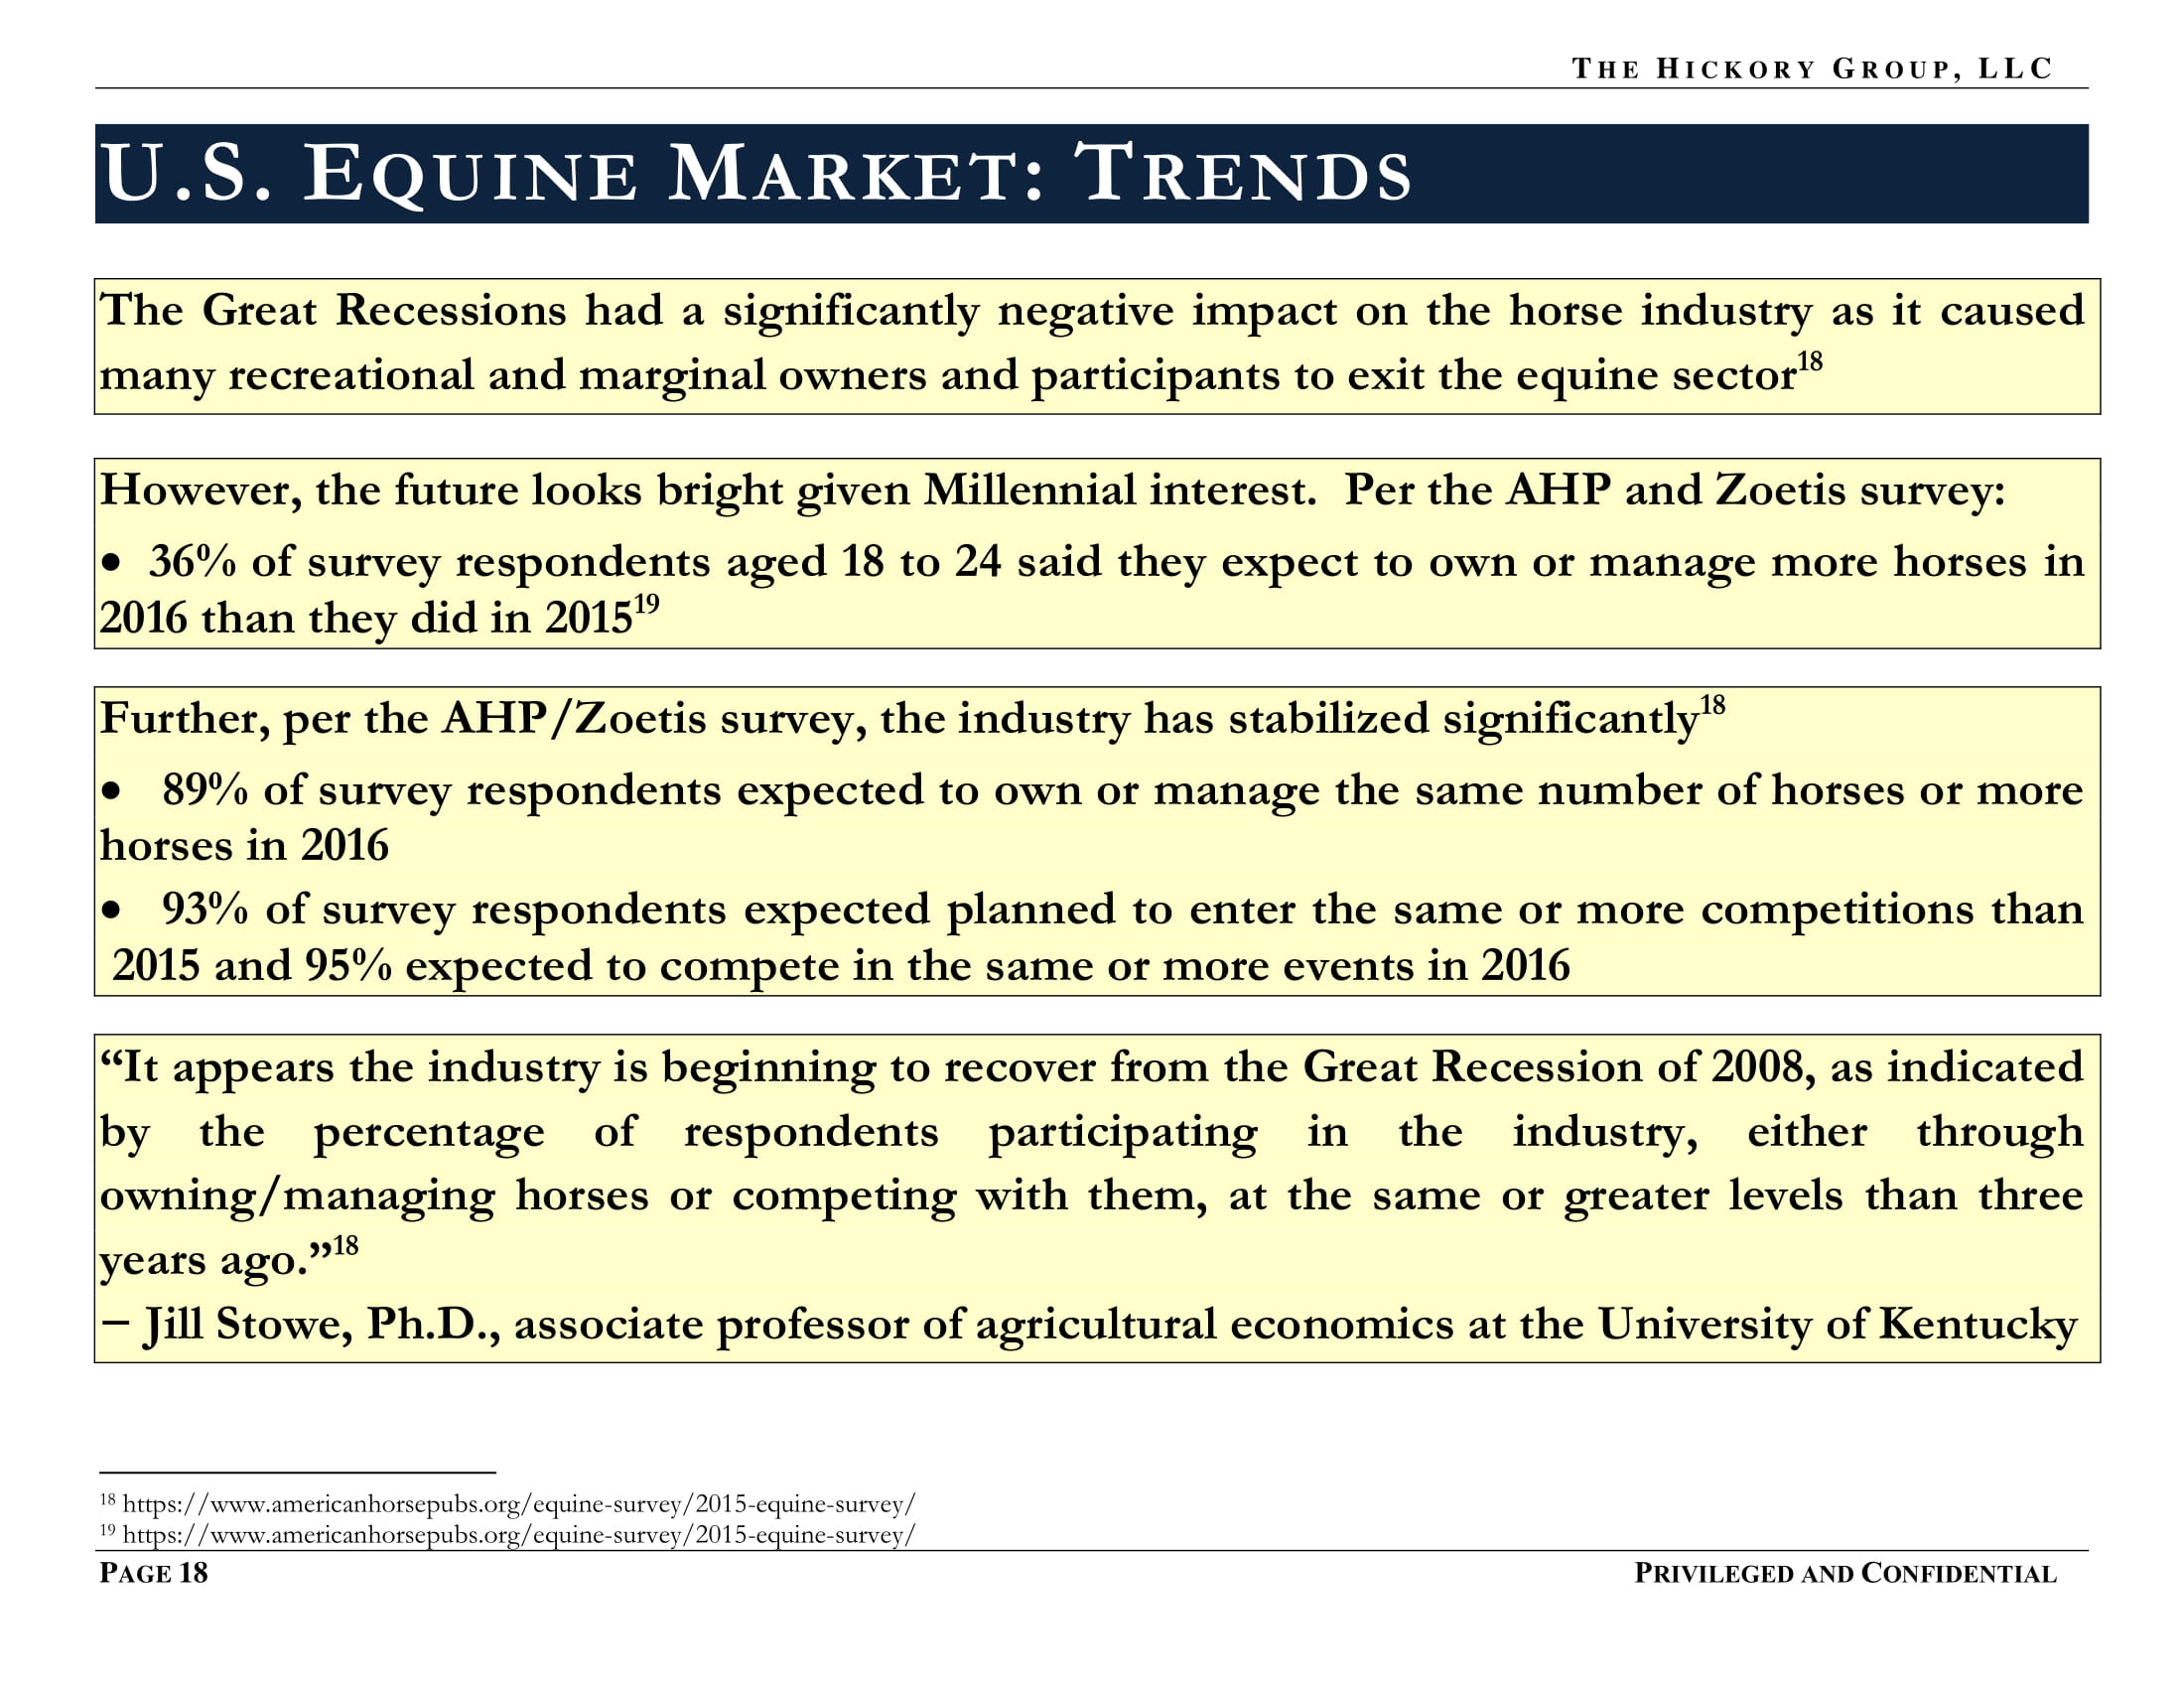 PUBLIC FINAL _Millennials and Equine Market Summary (15 November 2017) Privileged and Confidential-18.jpg